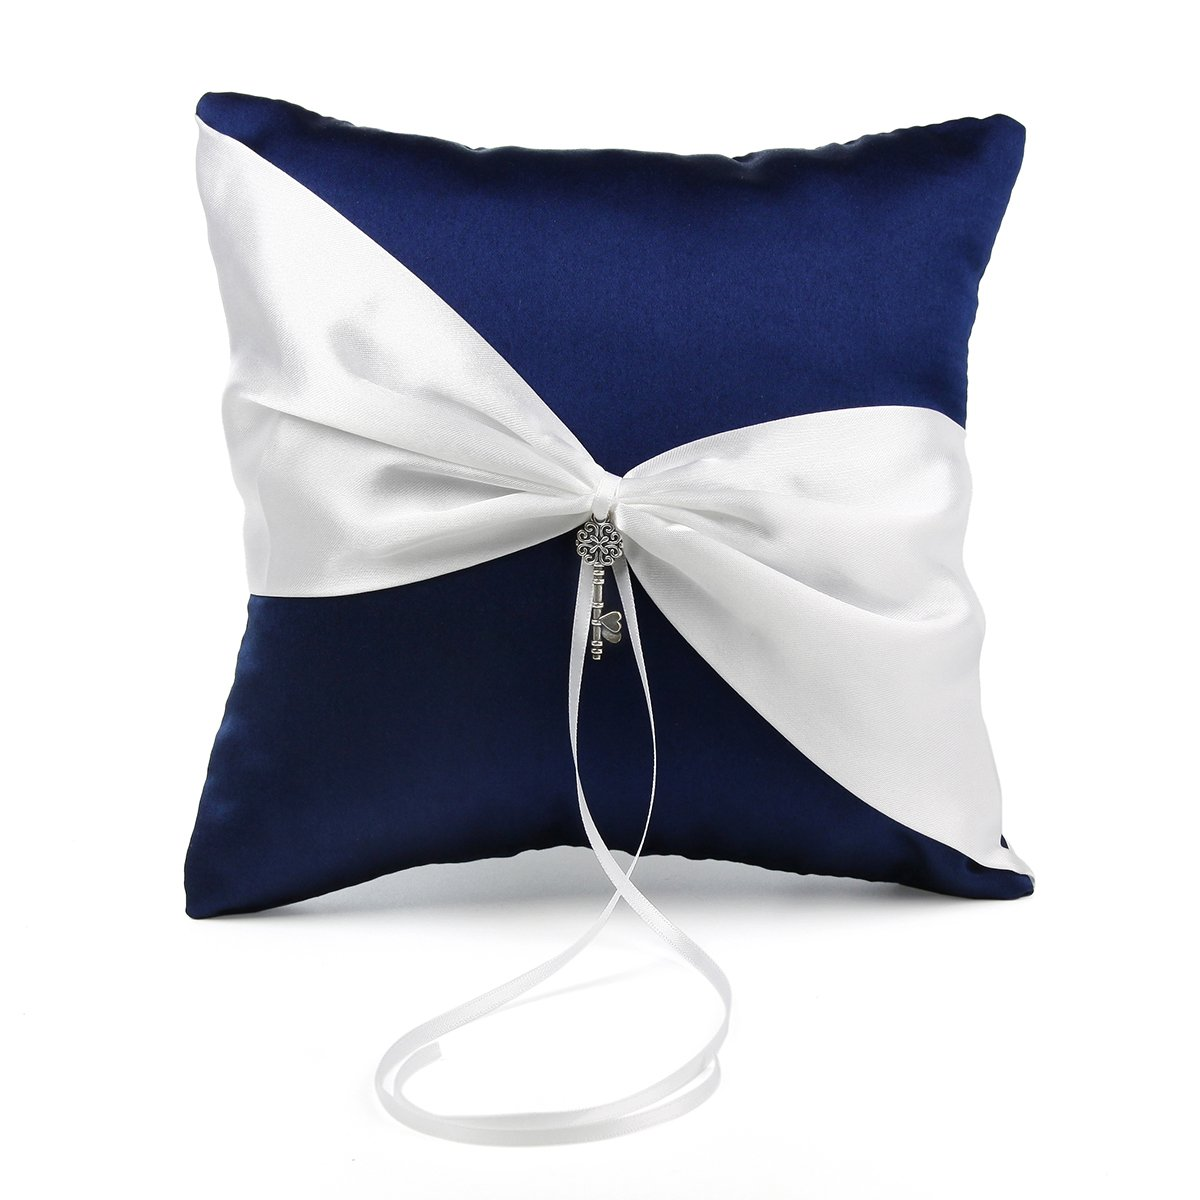 OnePlace Gifts Exclusive Navy Blue Satin Charms Wedding Ring Pillow Bearer 7.8'' (Key to Joined Hearts)